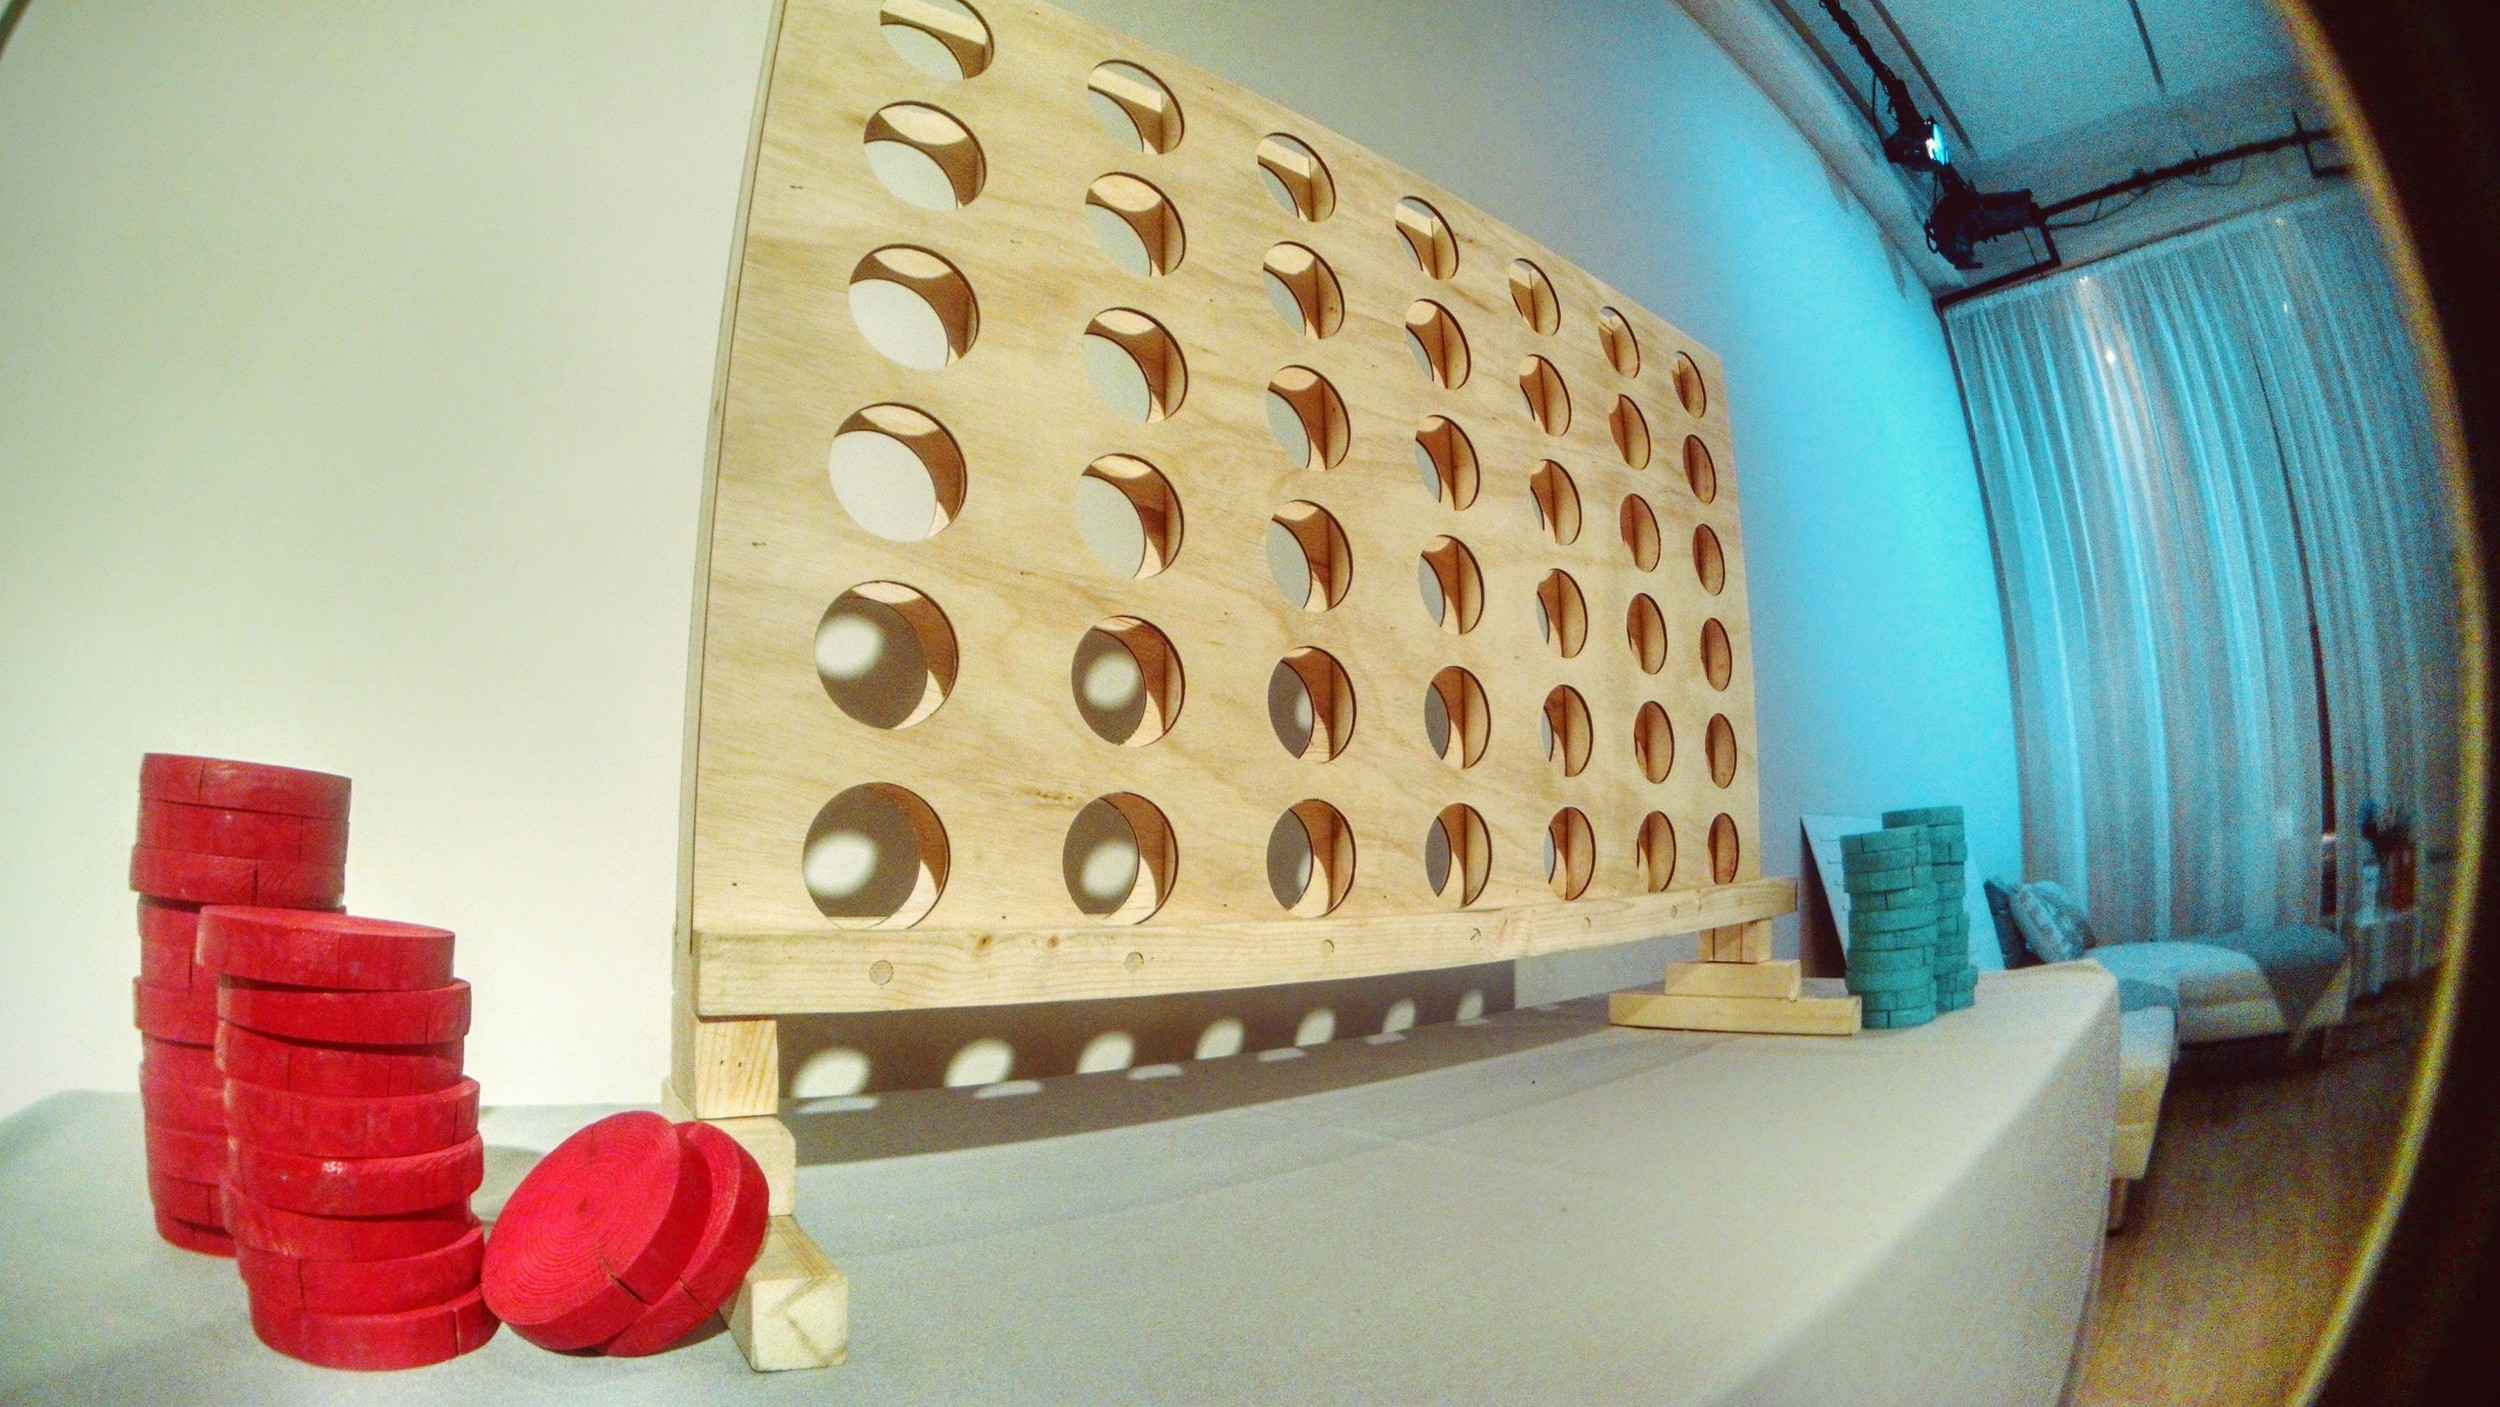 Giant Connect Four with the brand's signature blue color was a big hit during the evening cocktail reception. Giant Jenga was also a hit at the reception and allowed for attendees to mingle over a little friendly competition.